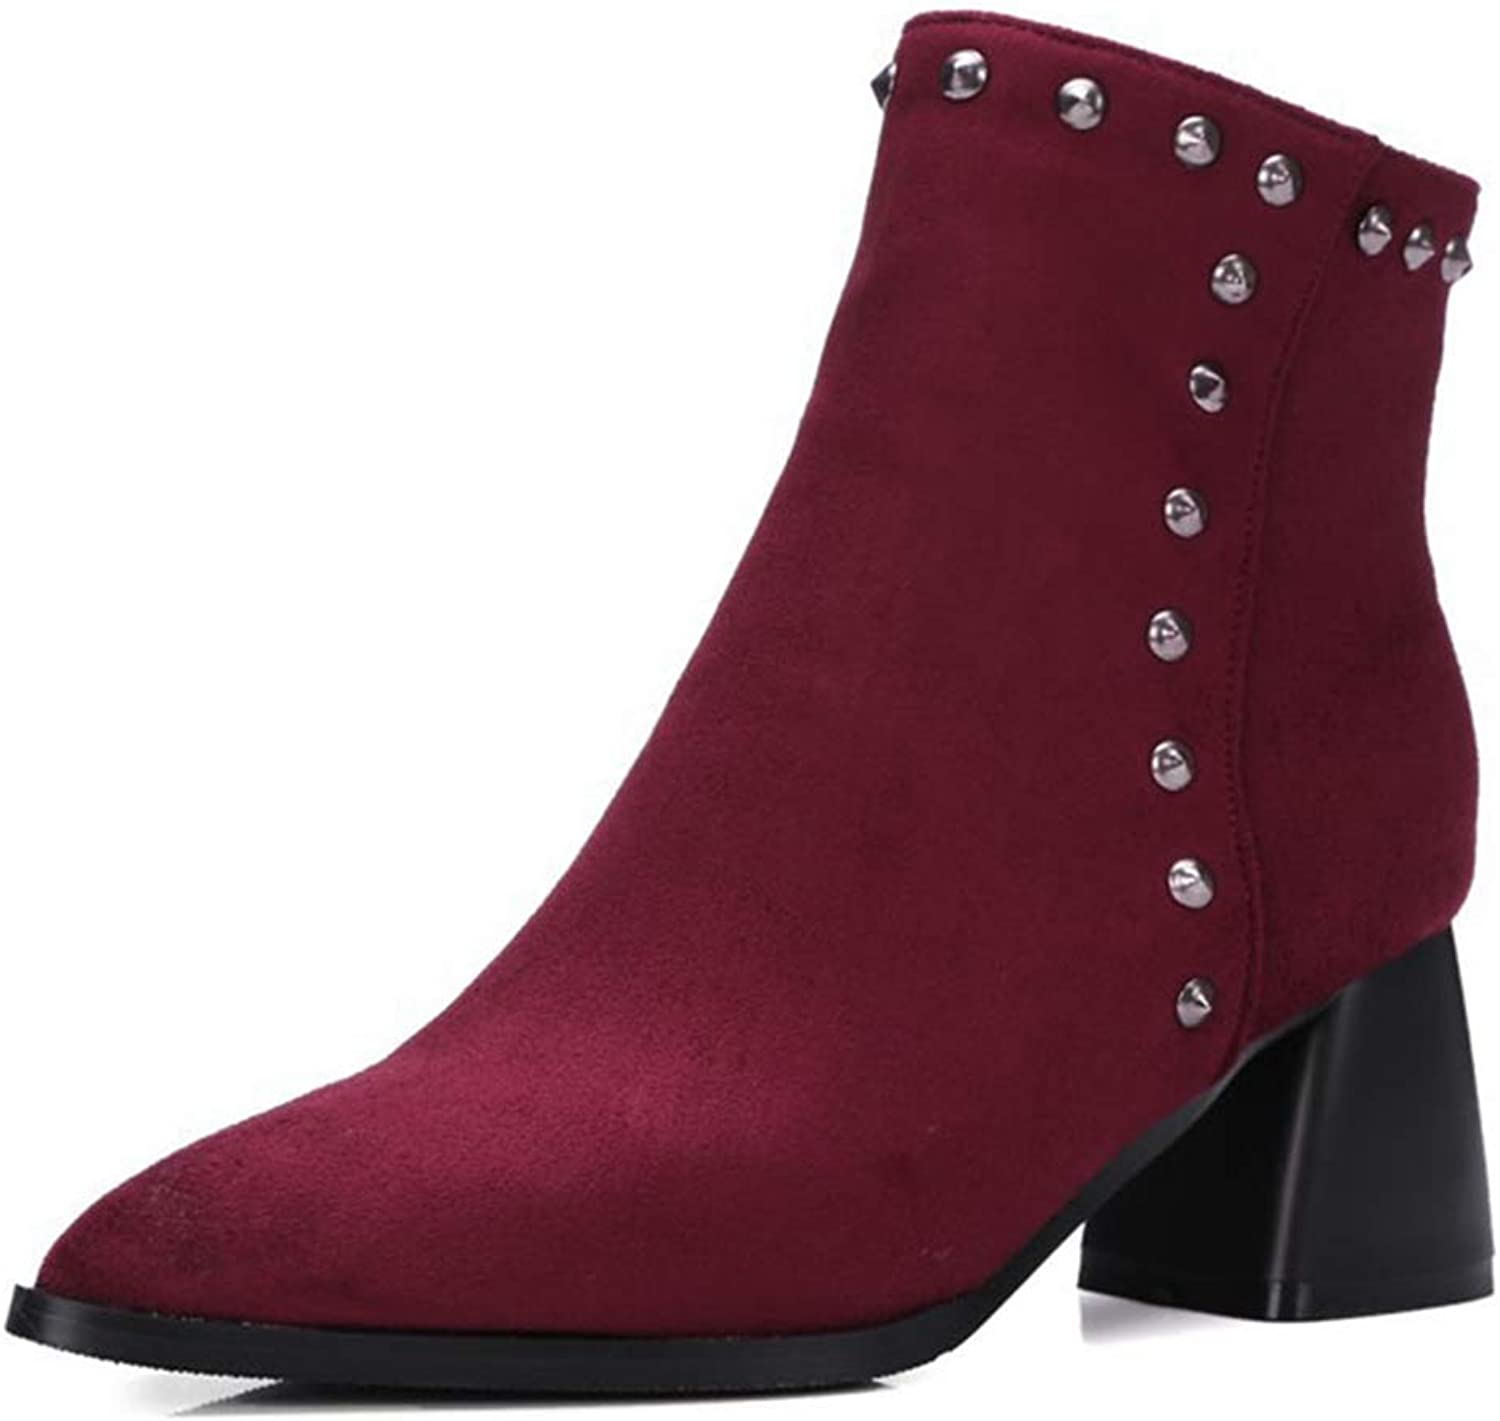 GIY Women's Retro Pointed Toe Ankle Boots Suede Platform Chunky Block Heel Bootie Studded Rivet Short Boot